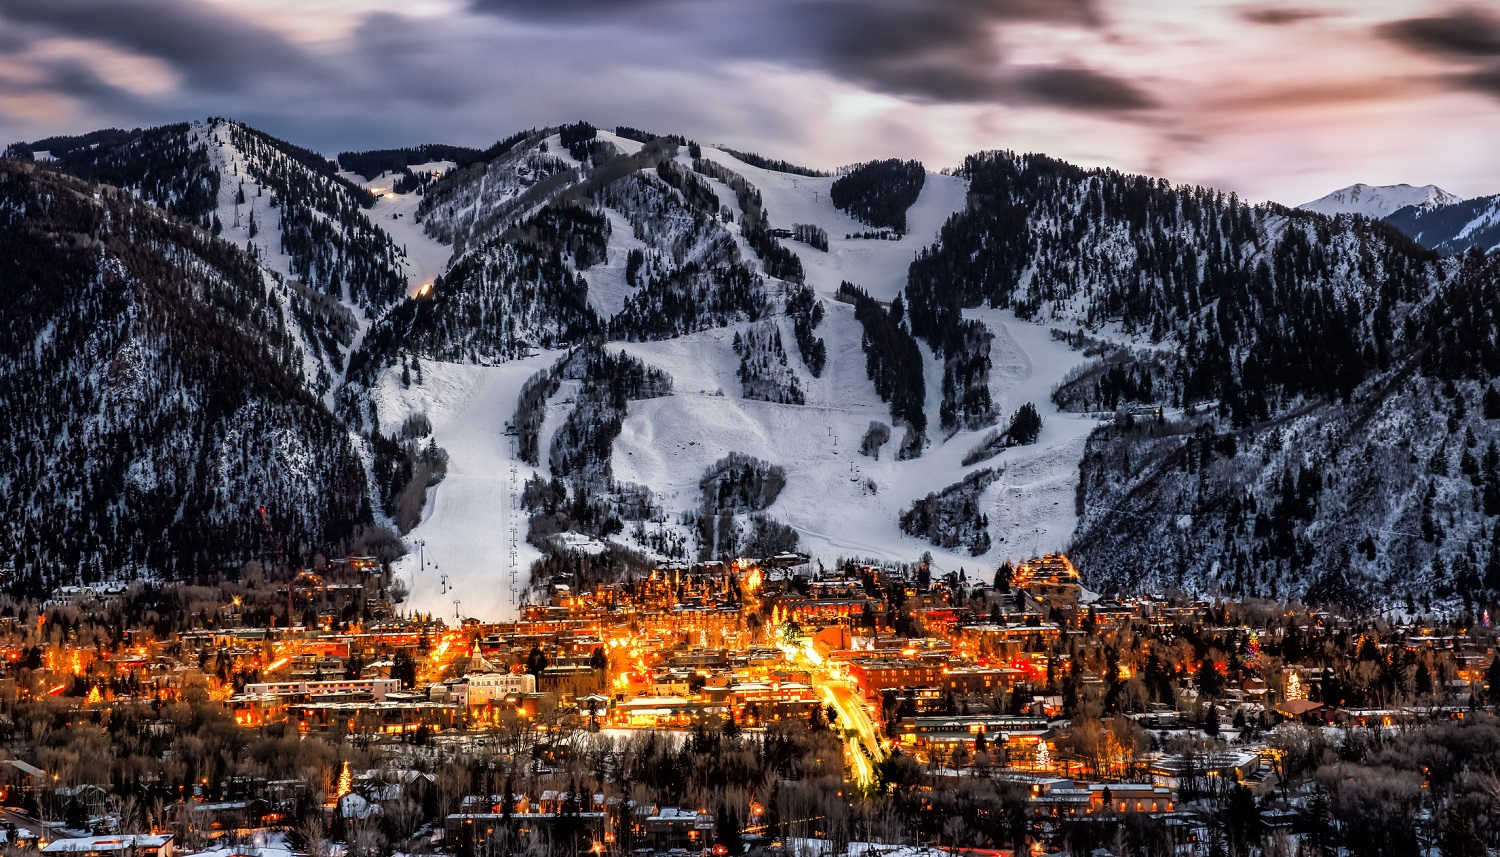 Looking at Aspen Colorado during the winter season